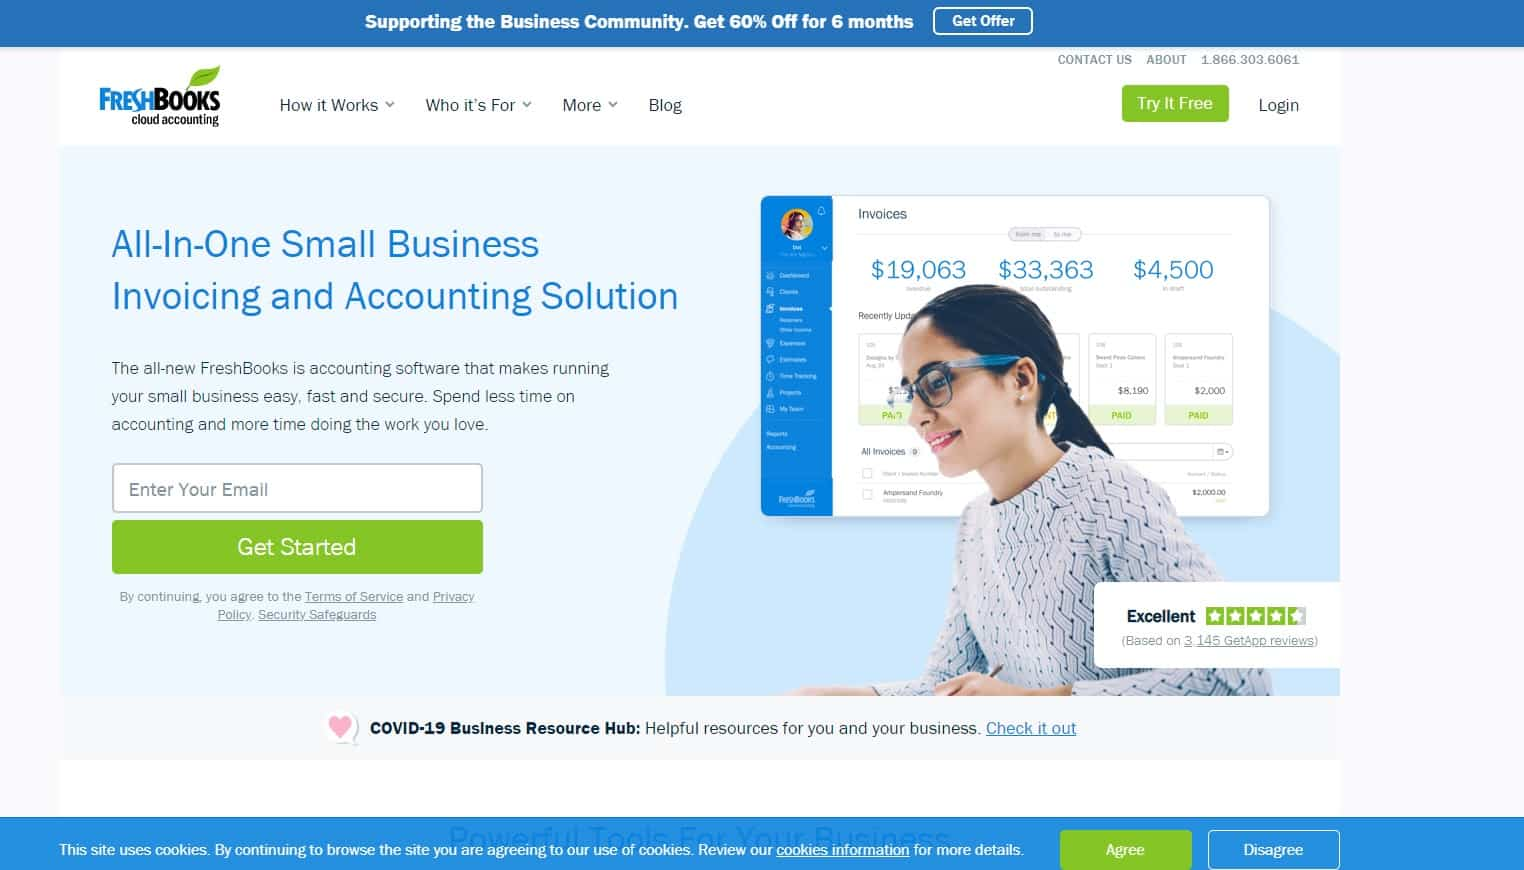 FreshBooks main site screenshot